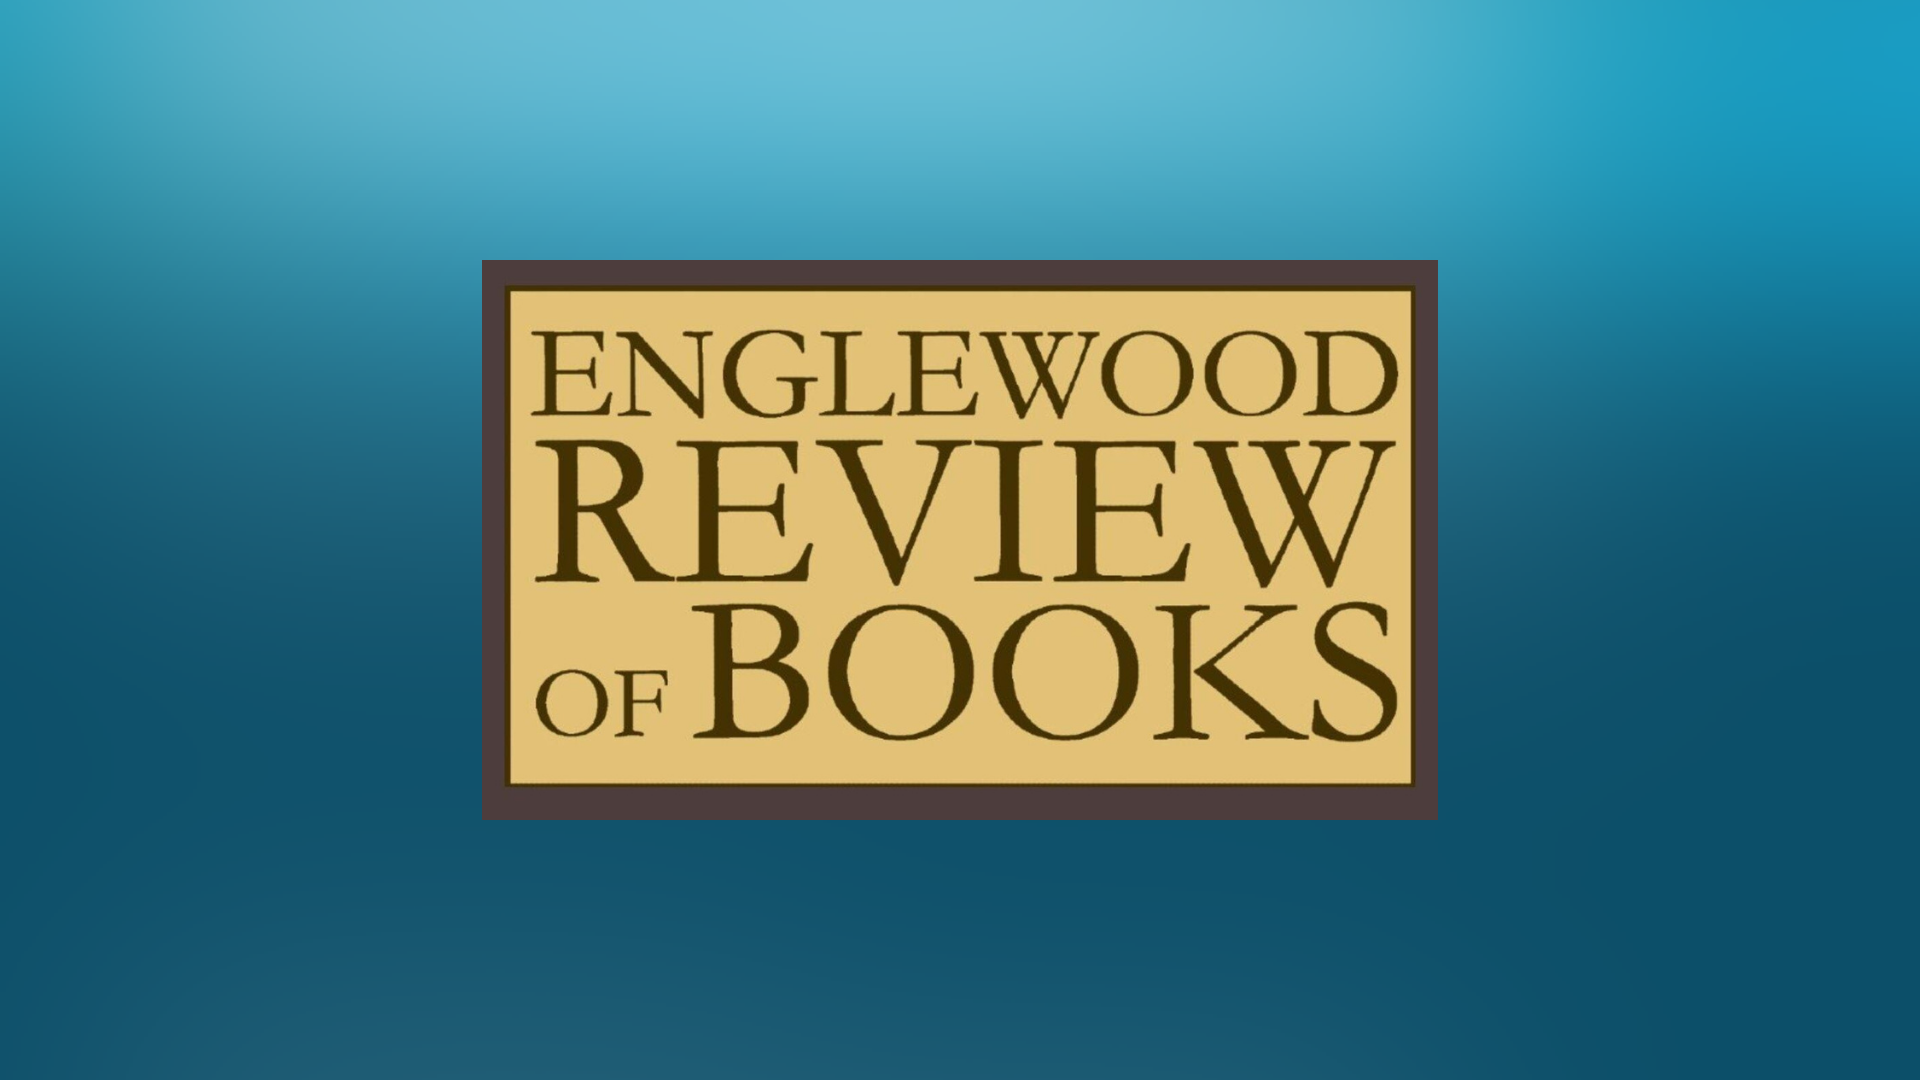 gradient blue graphic with the Englewood Review of Books logo